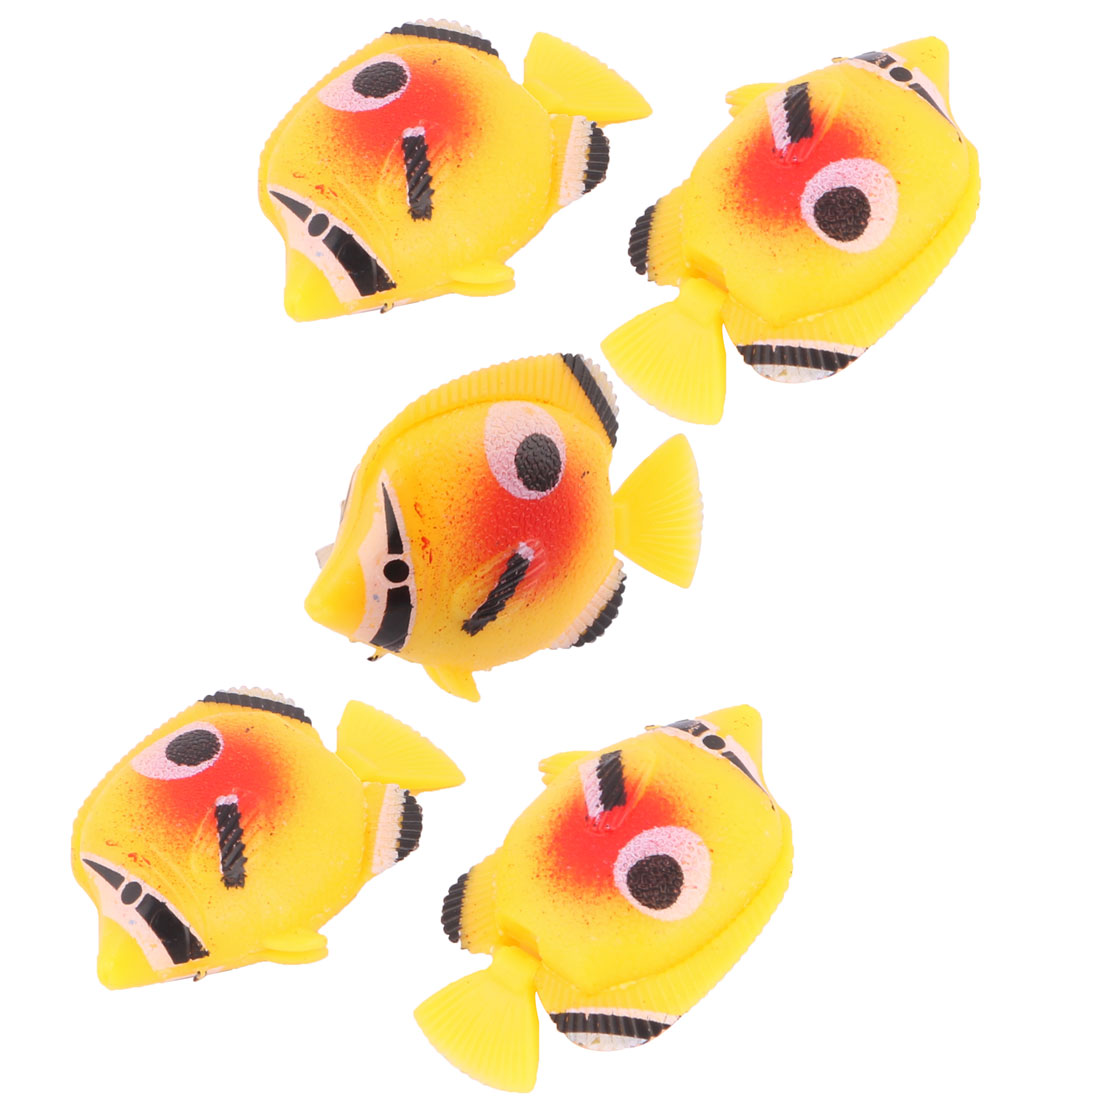 5 Pieces Mini Floating Plastic Fish Aquarium Ornament